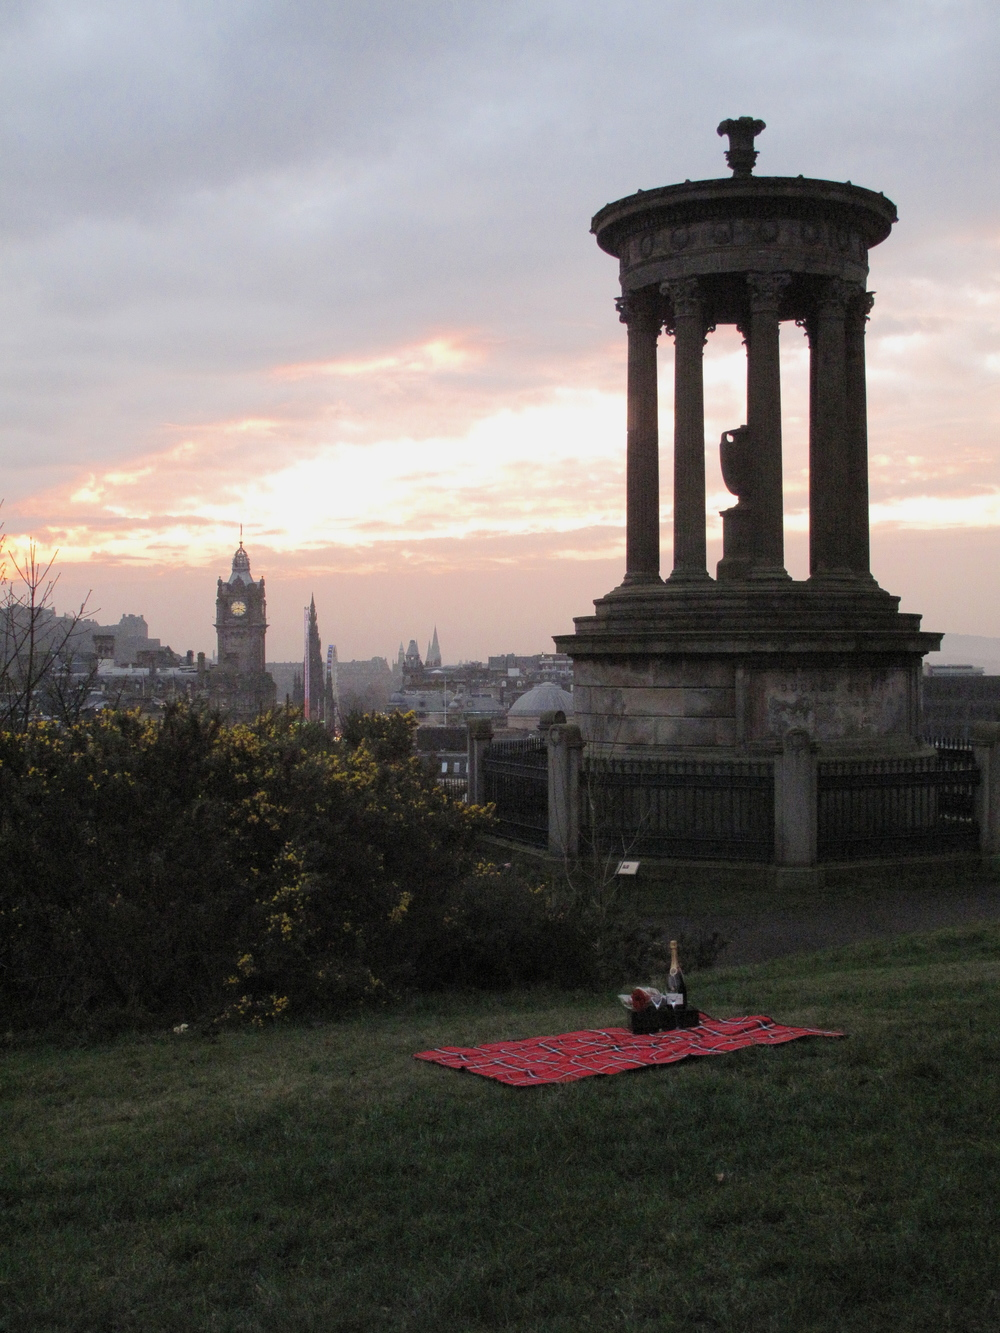 a picnic spread on Calton Hill